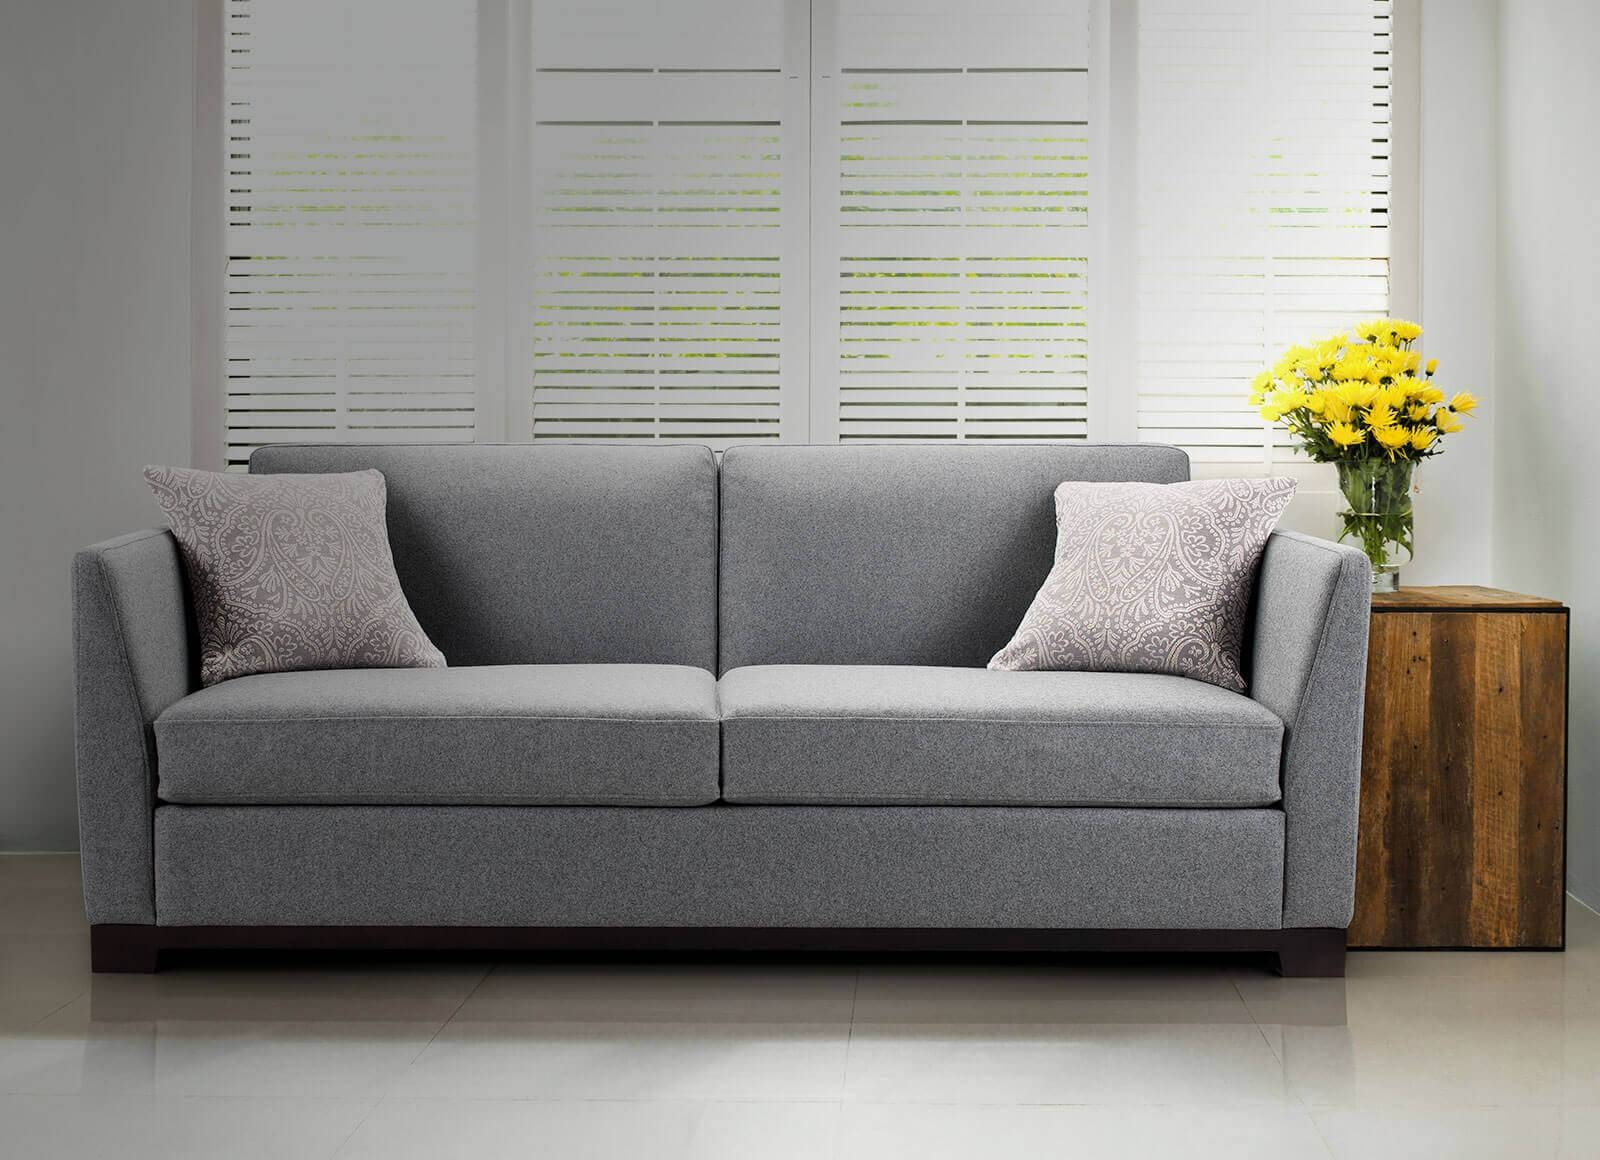 Furniture Home : Sofa Beds Model (9)Design Woll Sofa Beds Large with Luxury Sofa Beds (Image 5 of 30)